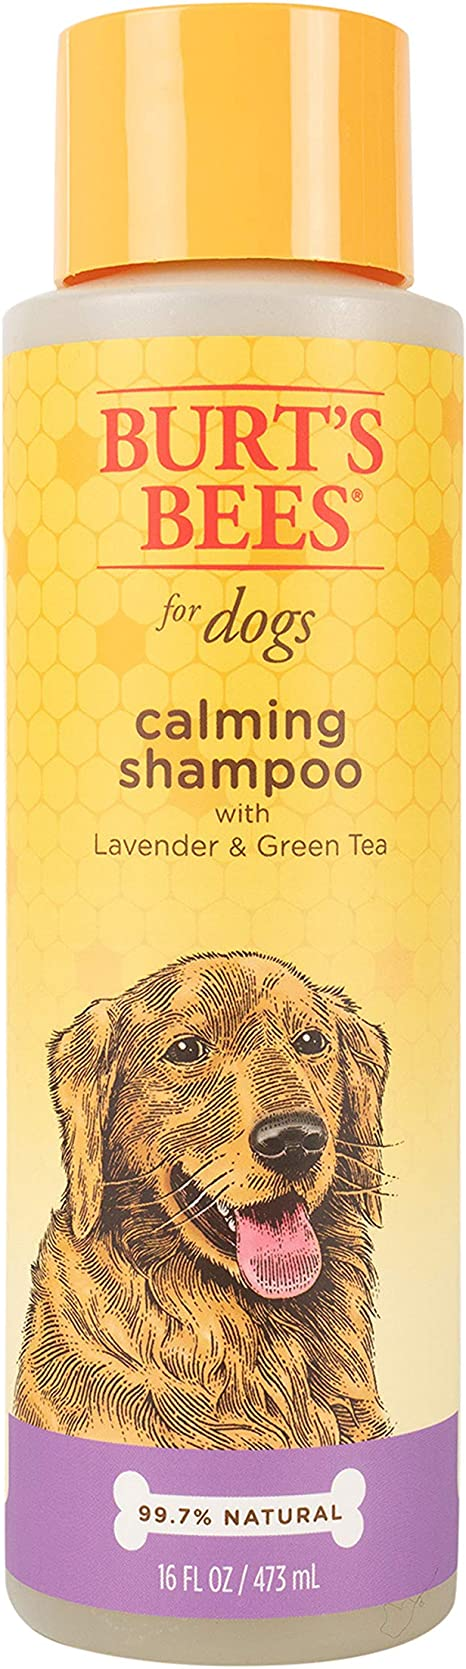 Burt's Bees for Pets for Dogs Natural Calming Shampoo